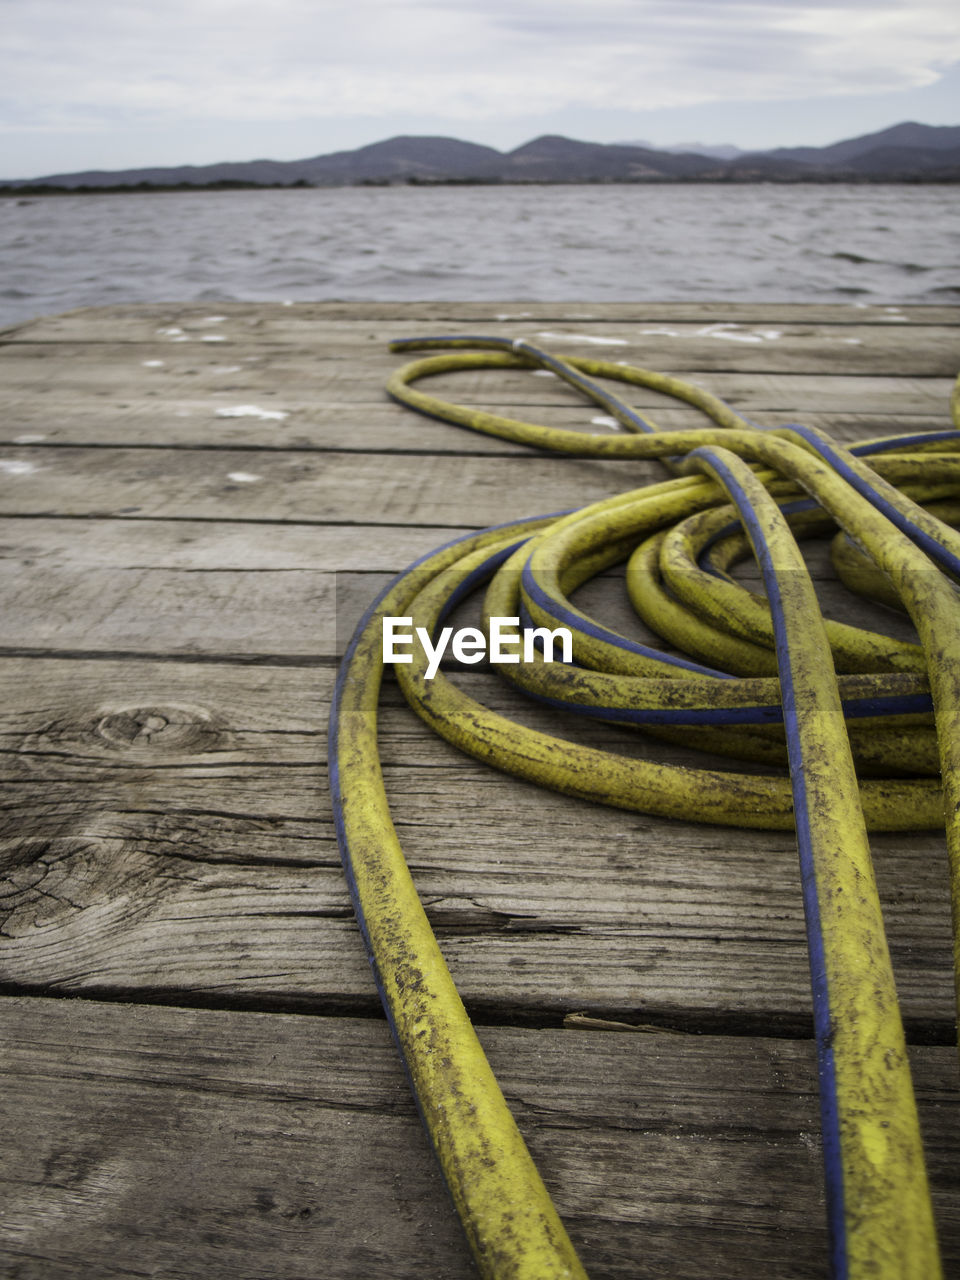 wood - material, no people, yellow, water, close-up, nature, day, rope, table, outdoors, focus on foreground, beauty in nature, metal, land, sea, spiral, connection, boardwalk, wood